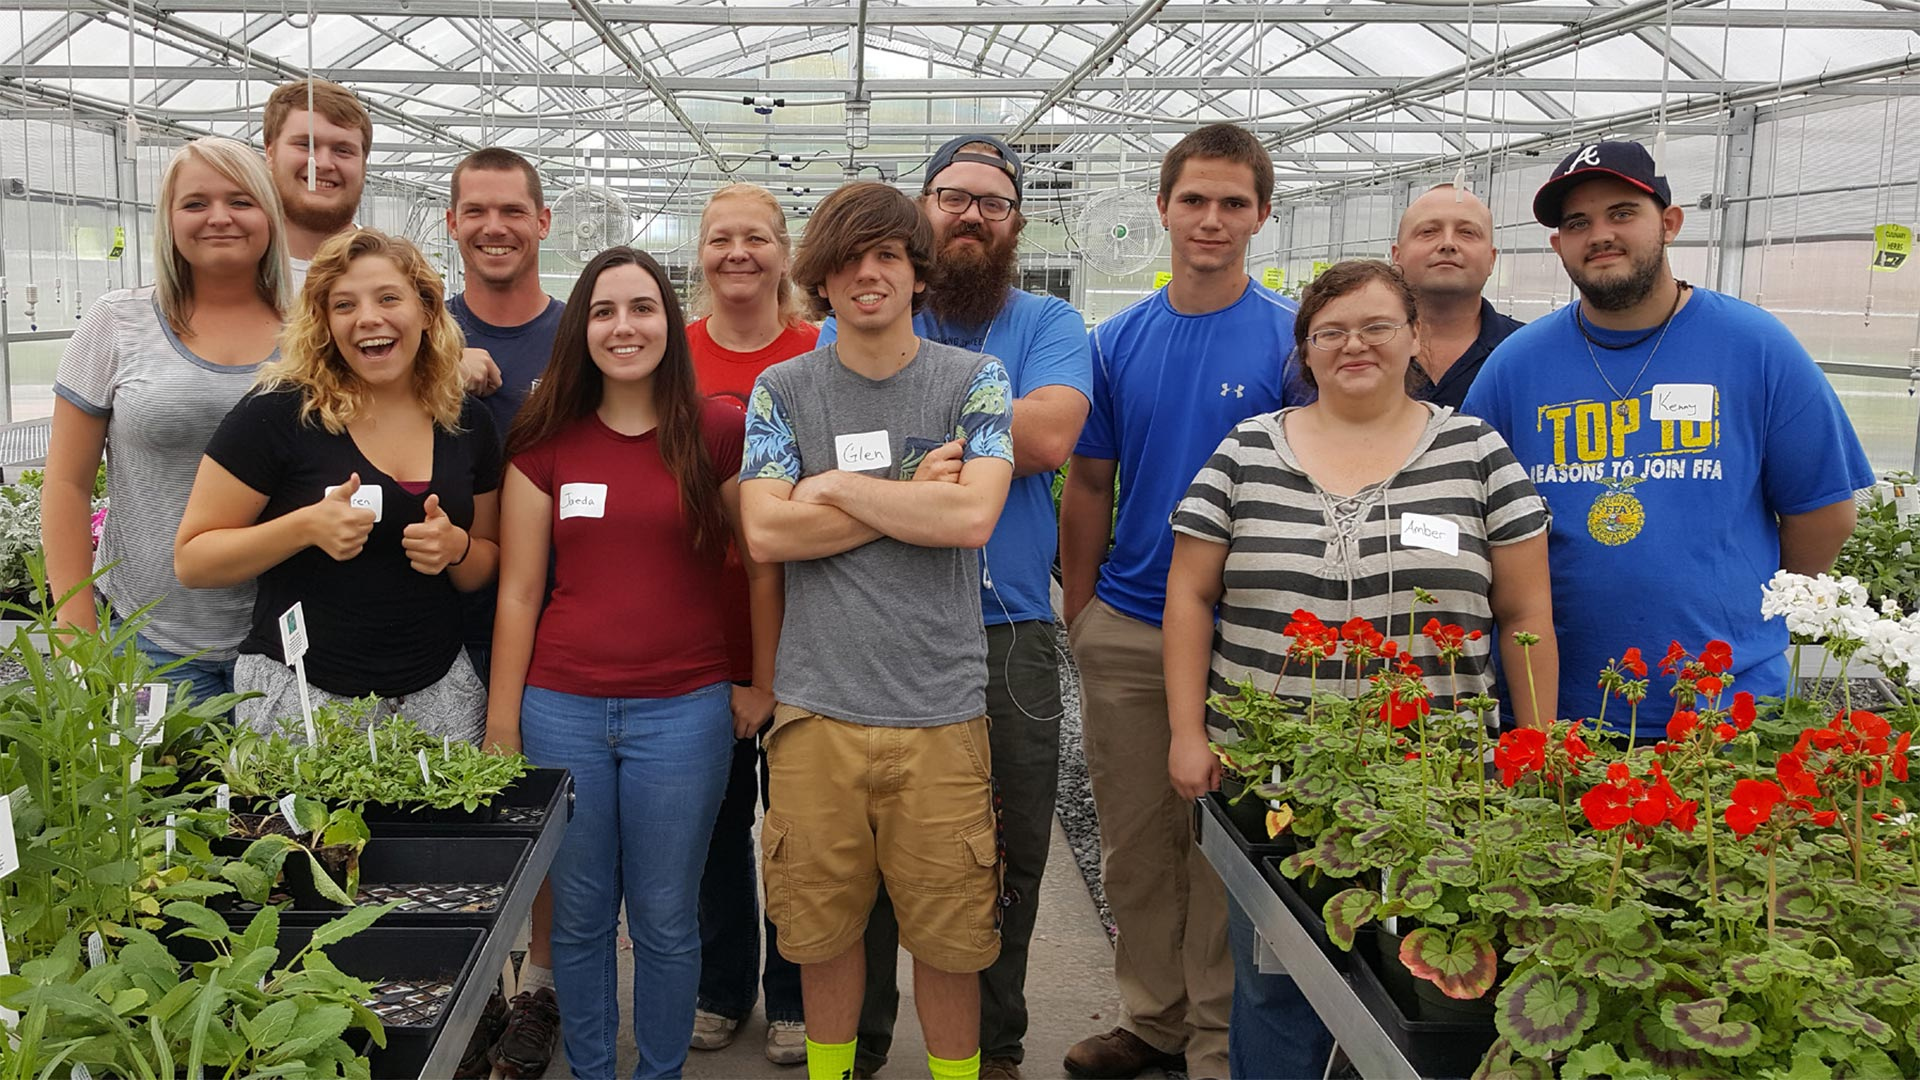 A group of students pose in a greenhouse with plants